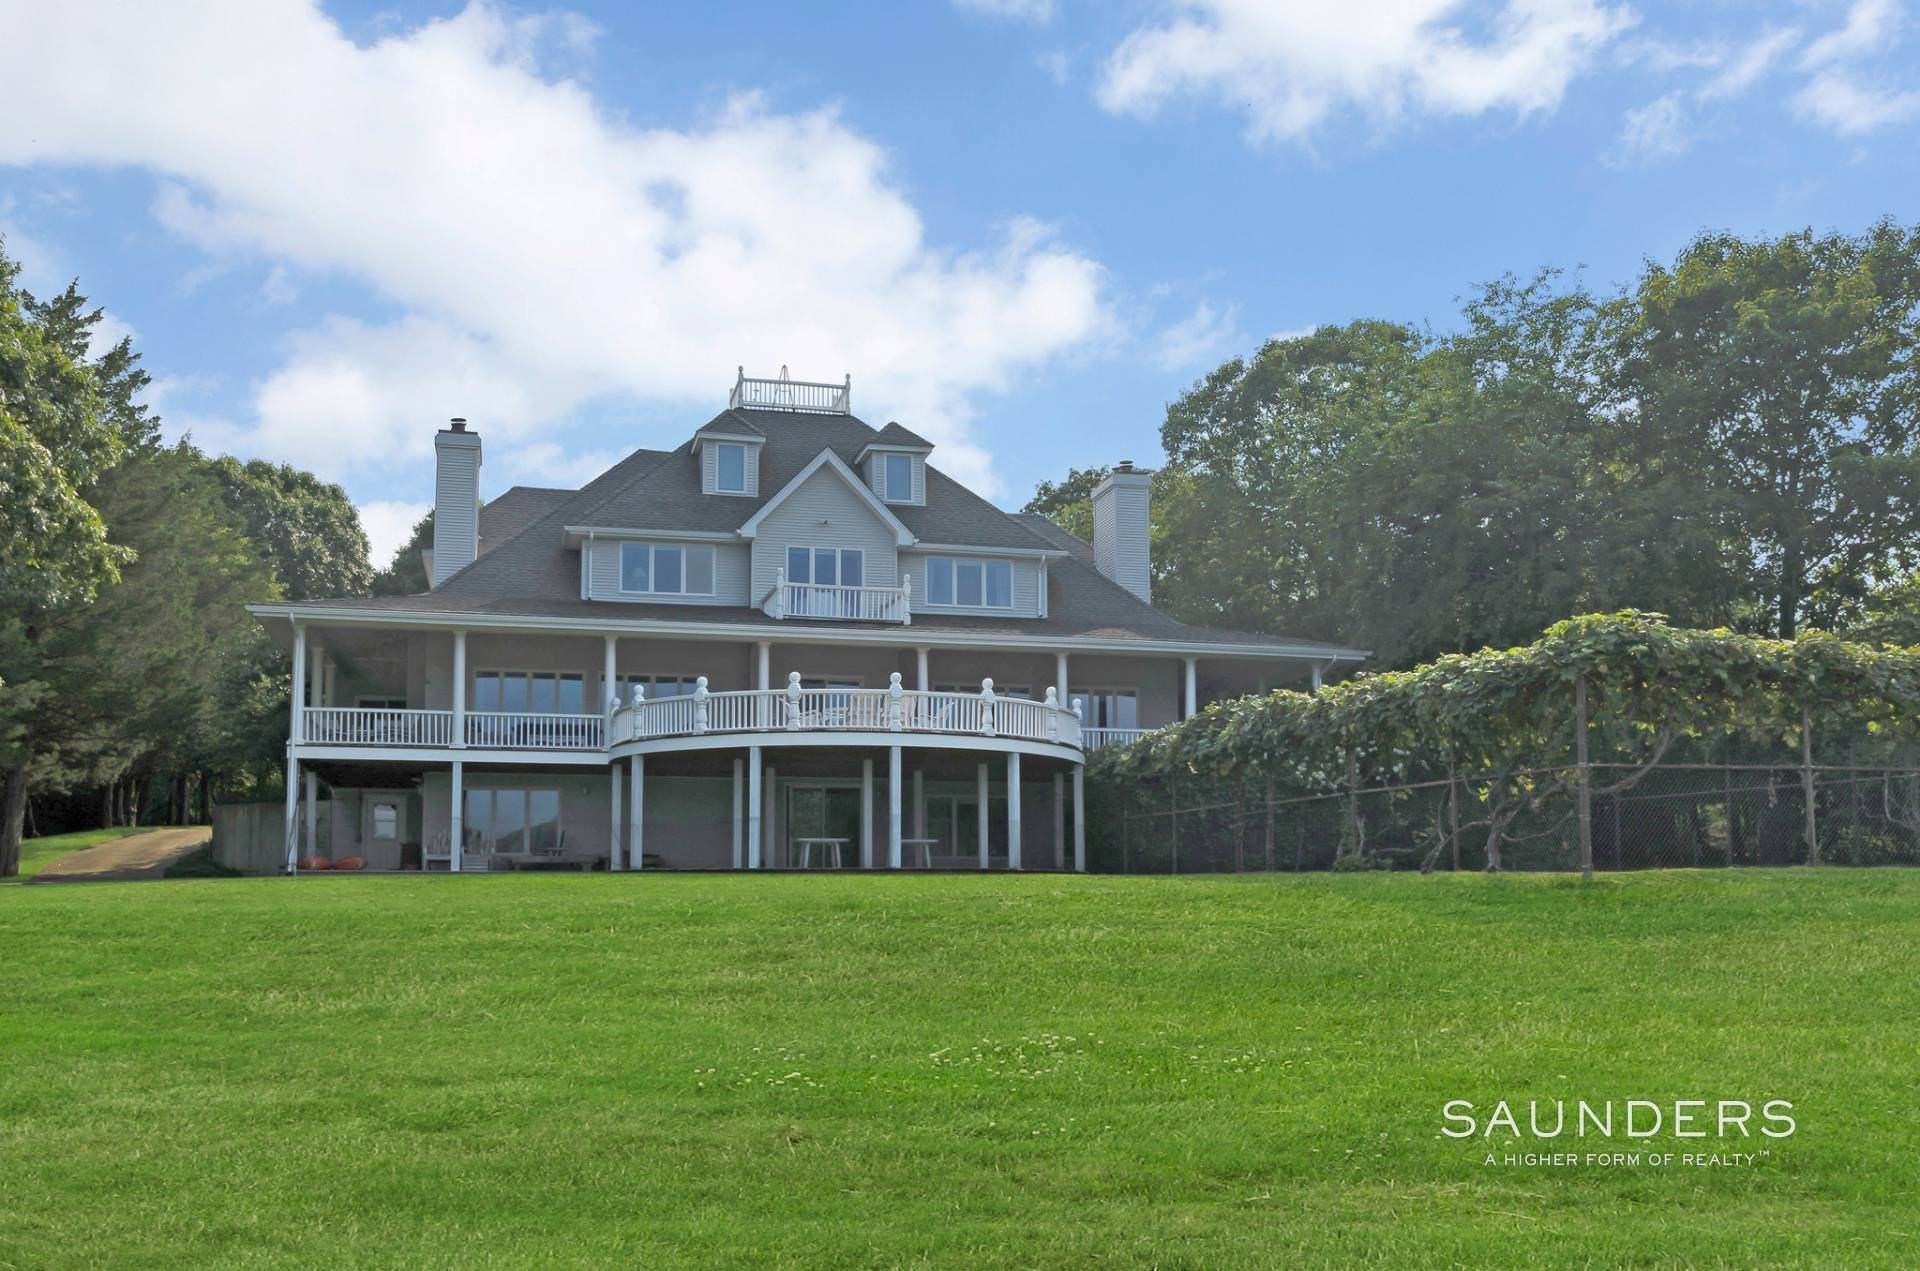 23. Single Family Homes for Sale at Estate Section Compound With Deep Water Dock, Sandy Beach, Pool 58 Westmoreland Drive, Shelter Island Heights, Shelter Island, NY 11964